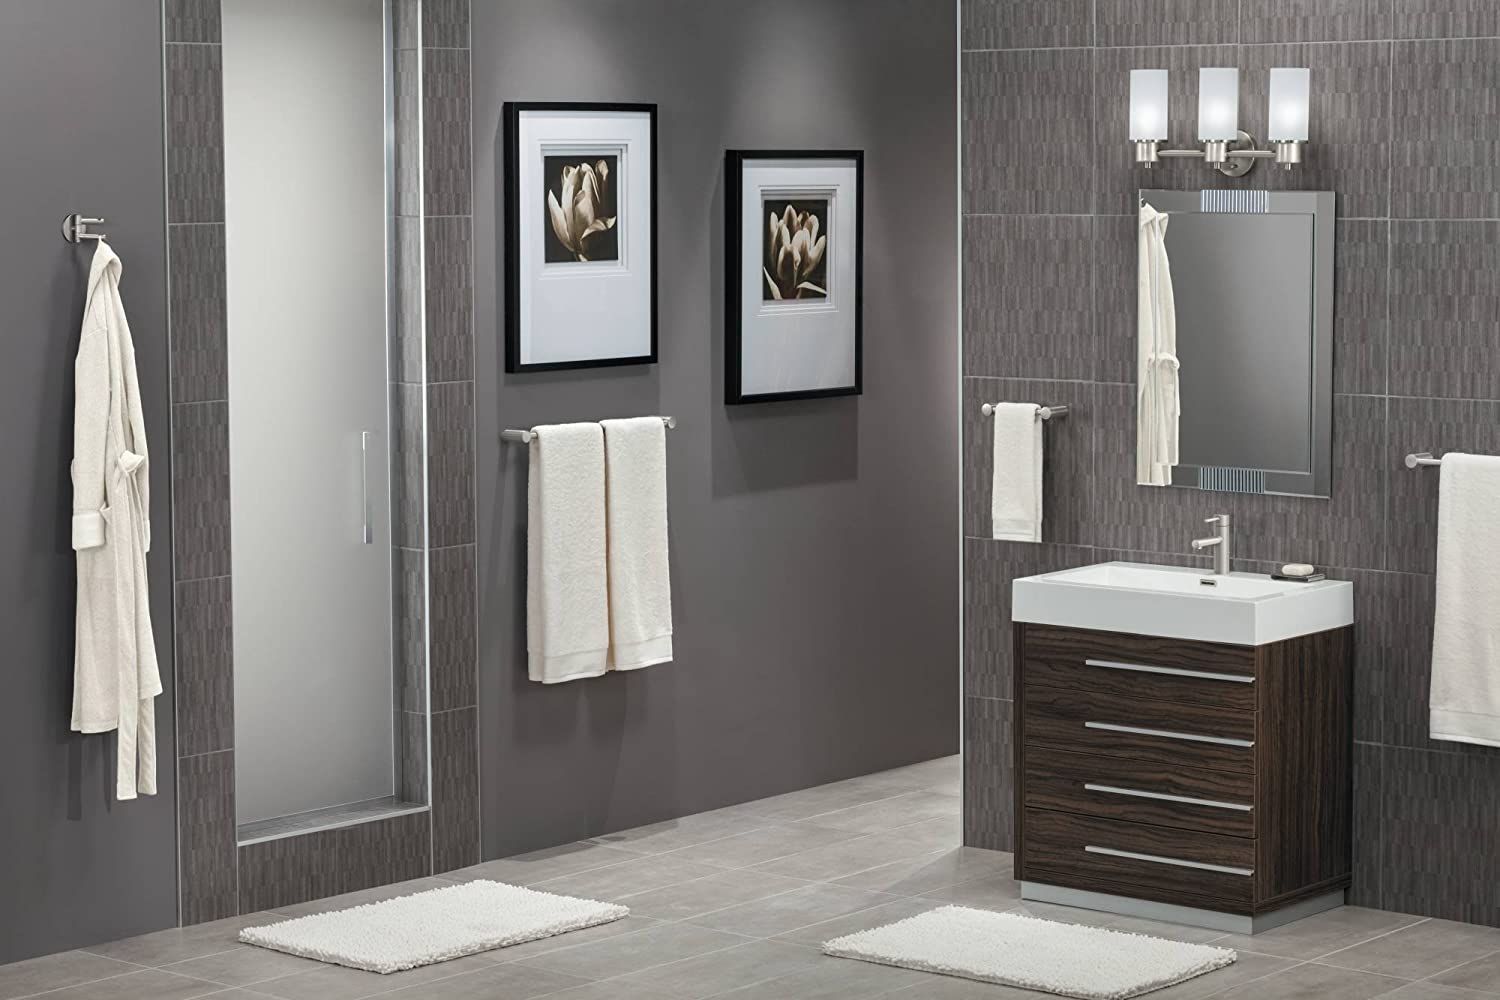 bathroom brushed pics moen of accessories design nickel inspiration